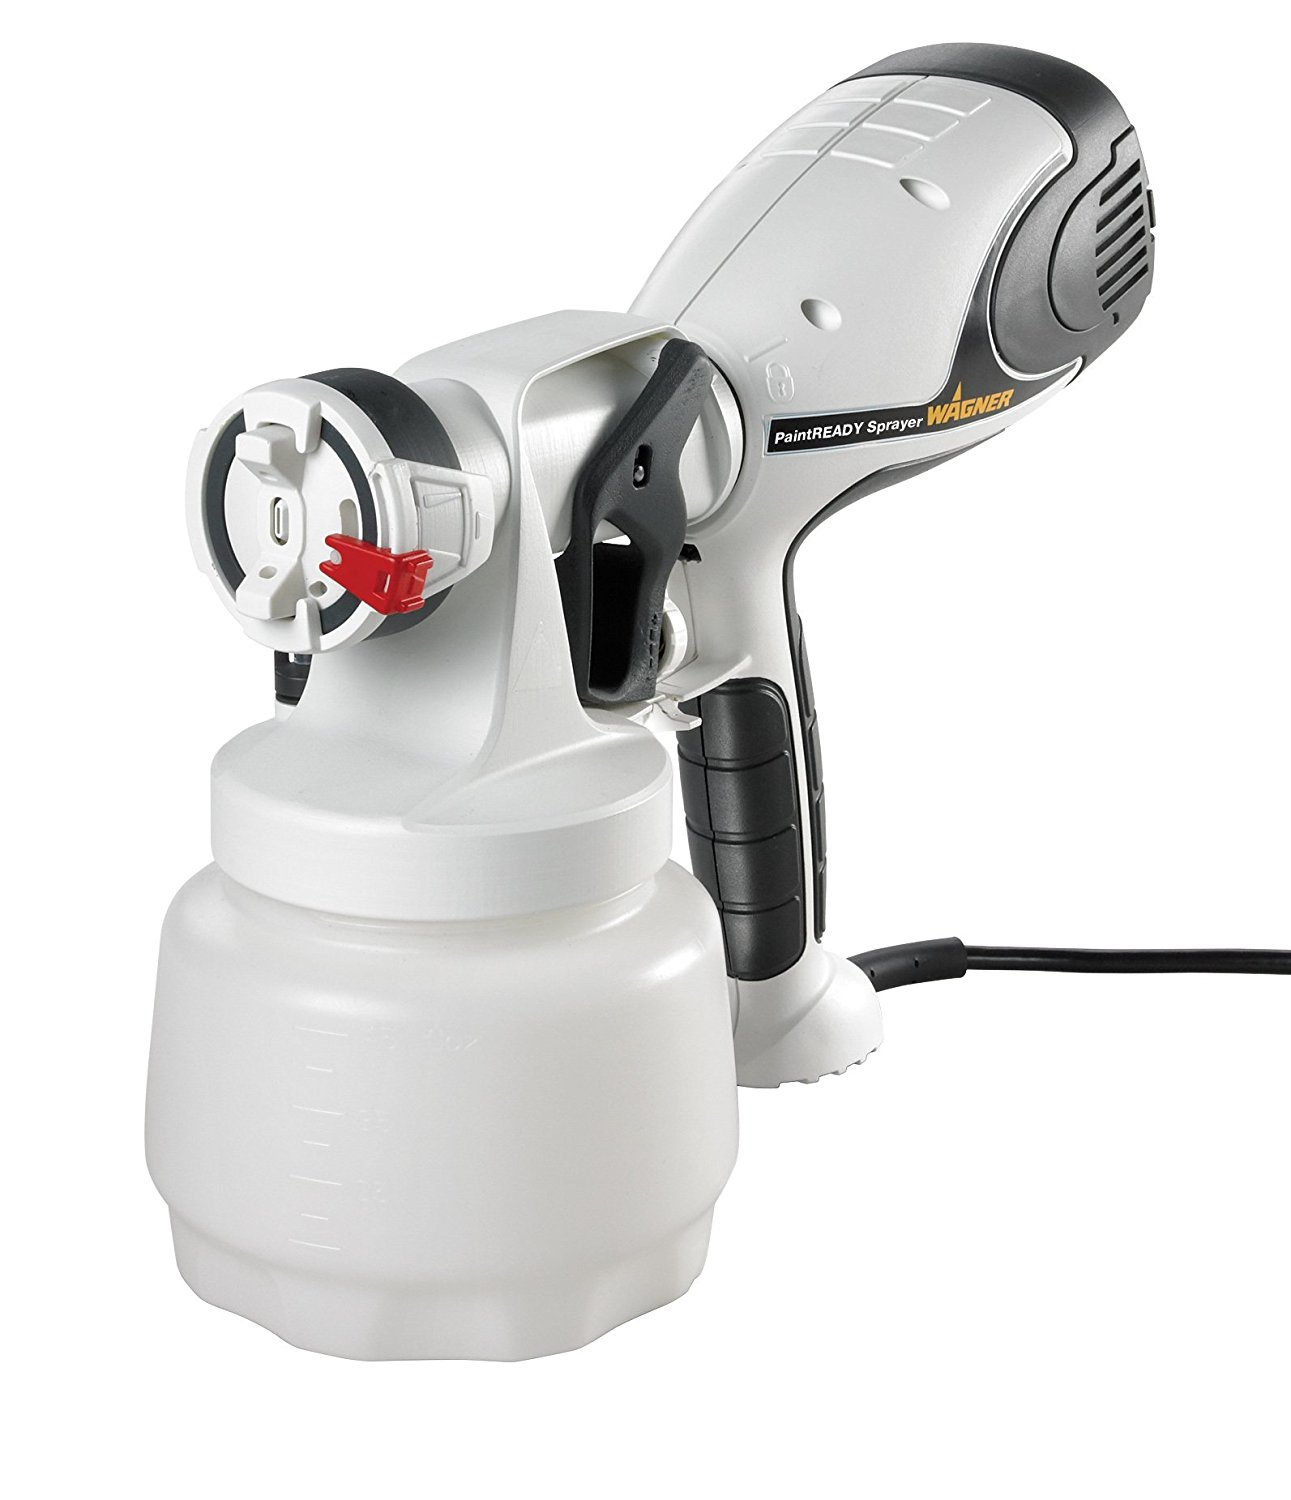 Wagner Paint Sprayer Reviews